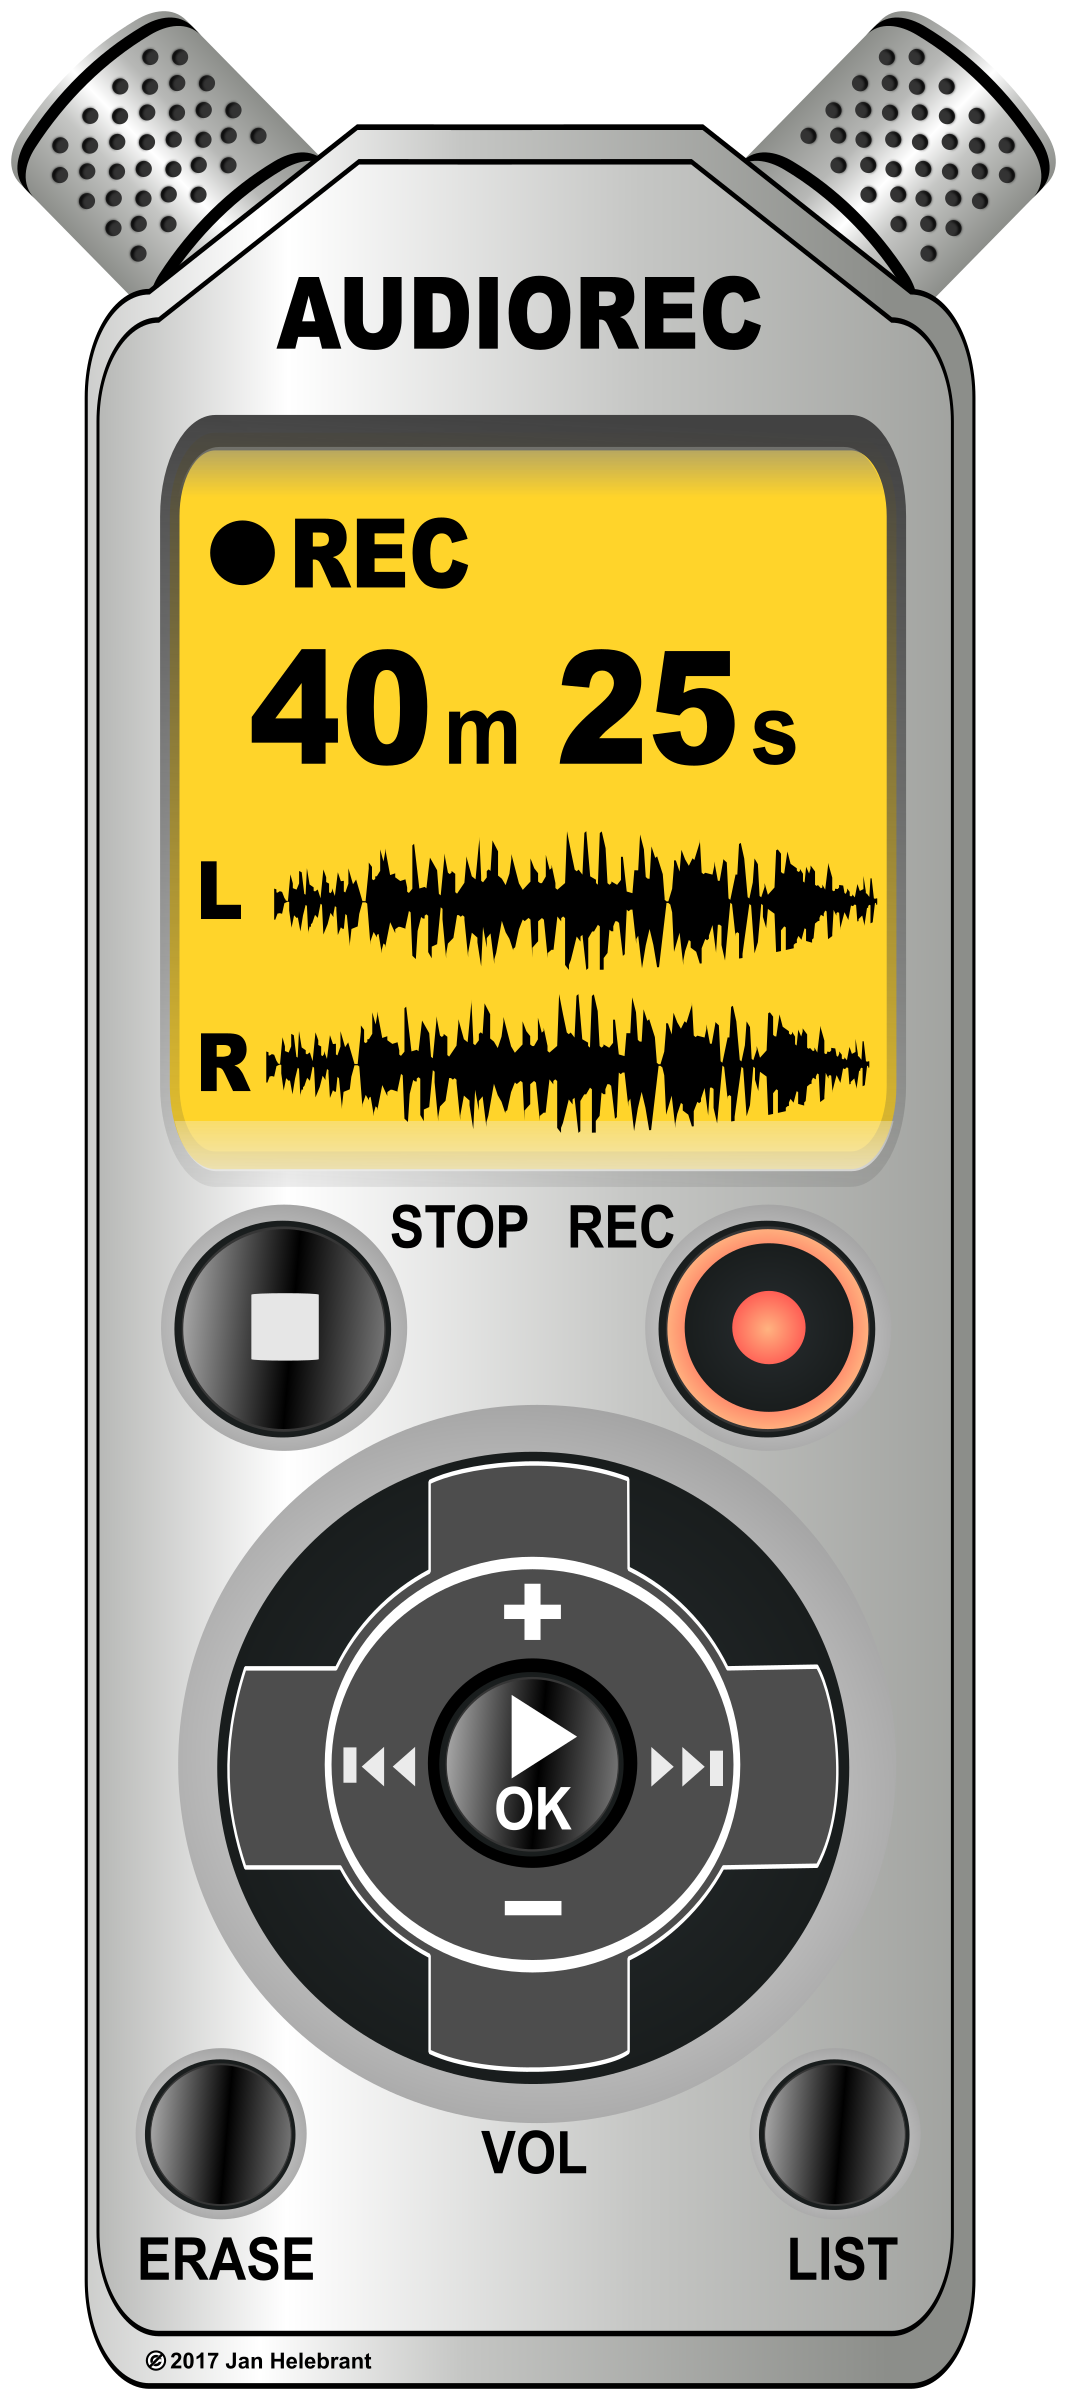 Voice / audio recorder / dictaphone by Juhele